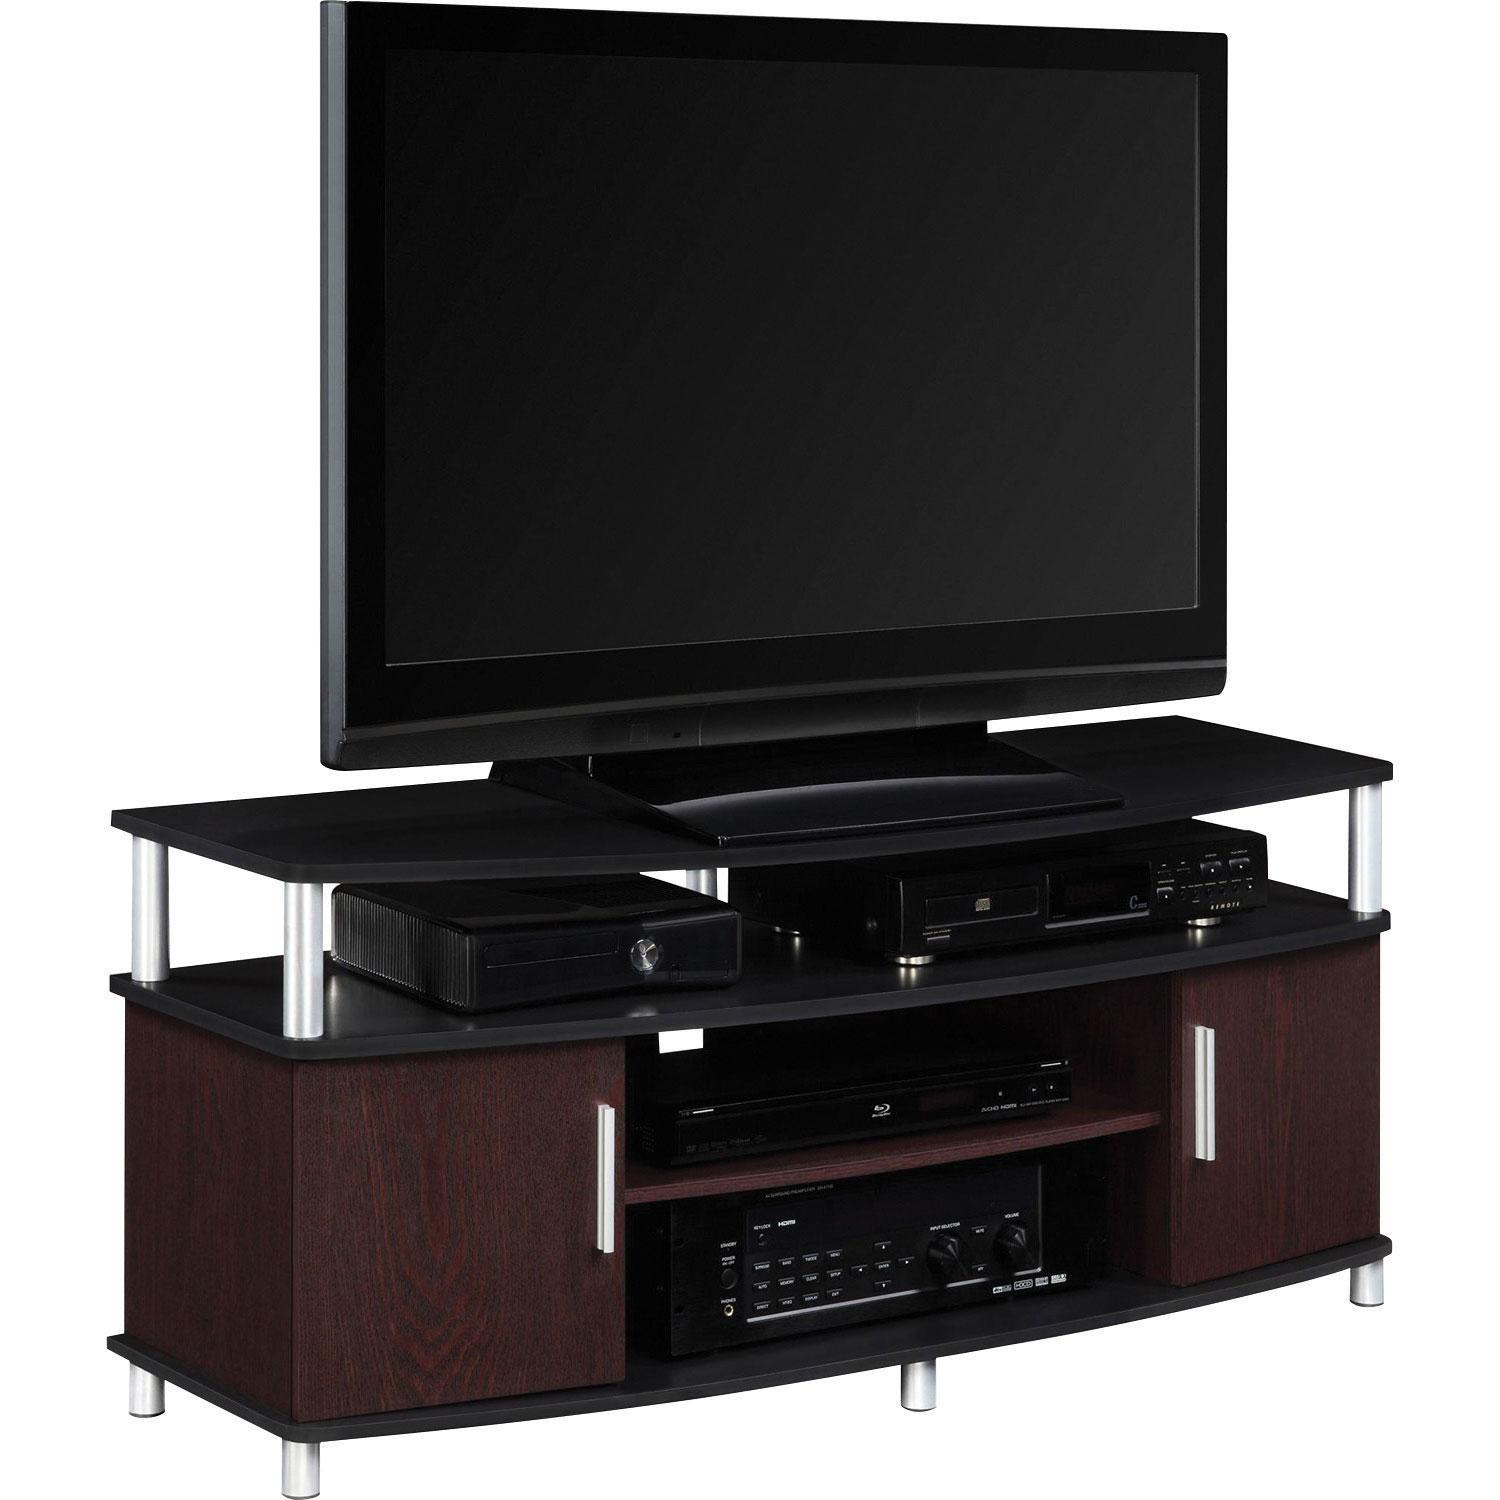 dorel carson  tv stand  cherryblack  tv stands  best buy canada -